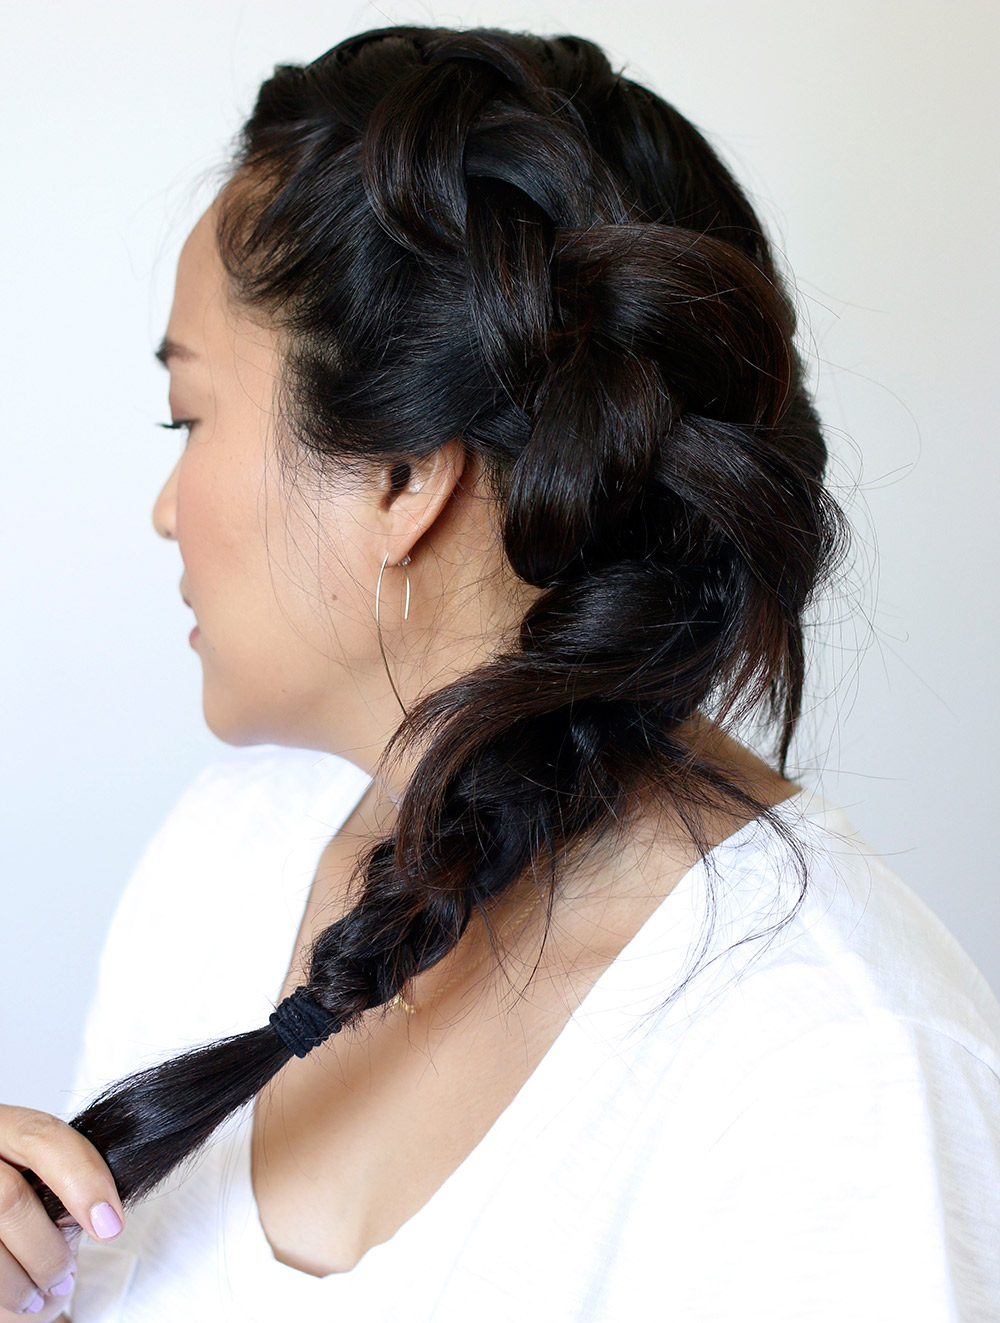 All about the Dutch Braids